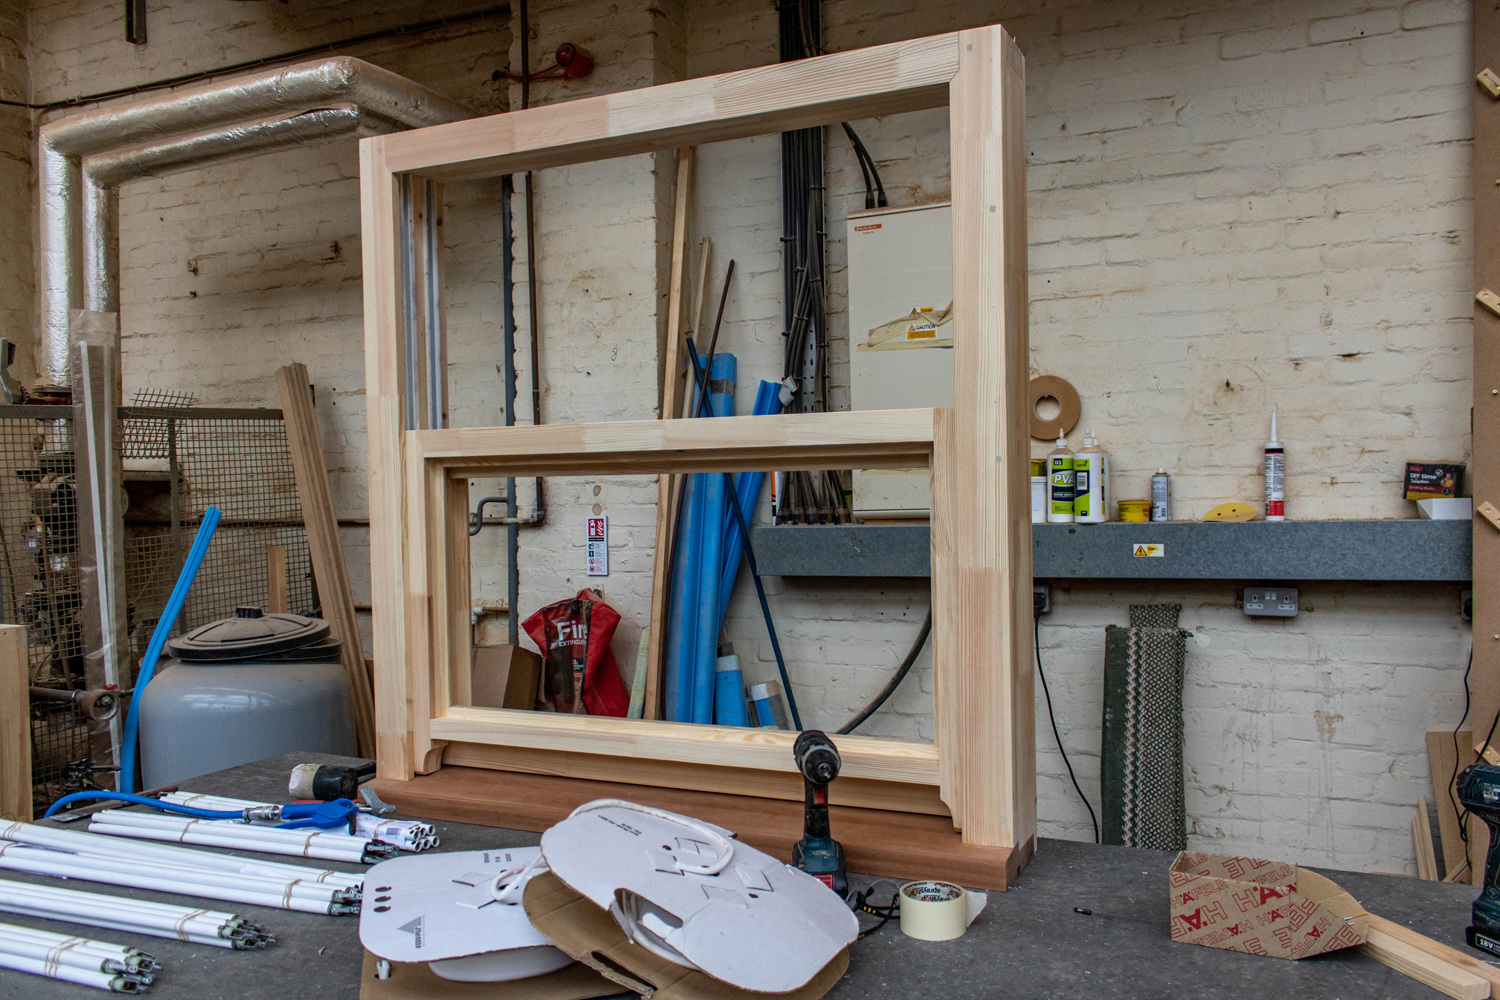 Double panel window with wood frame being built in K&D's workshop